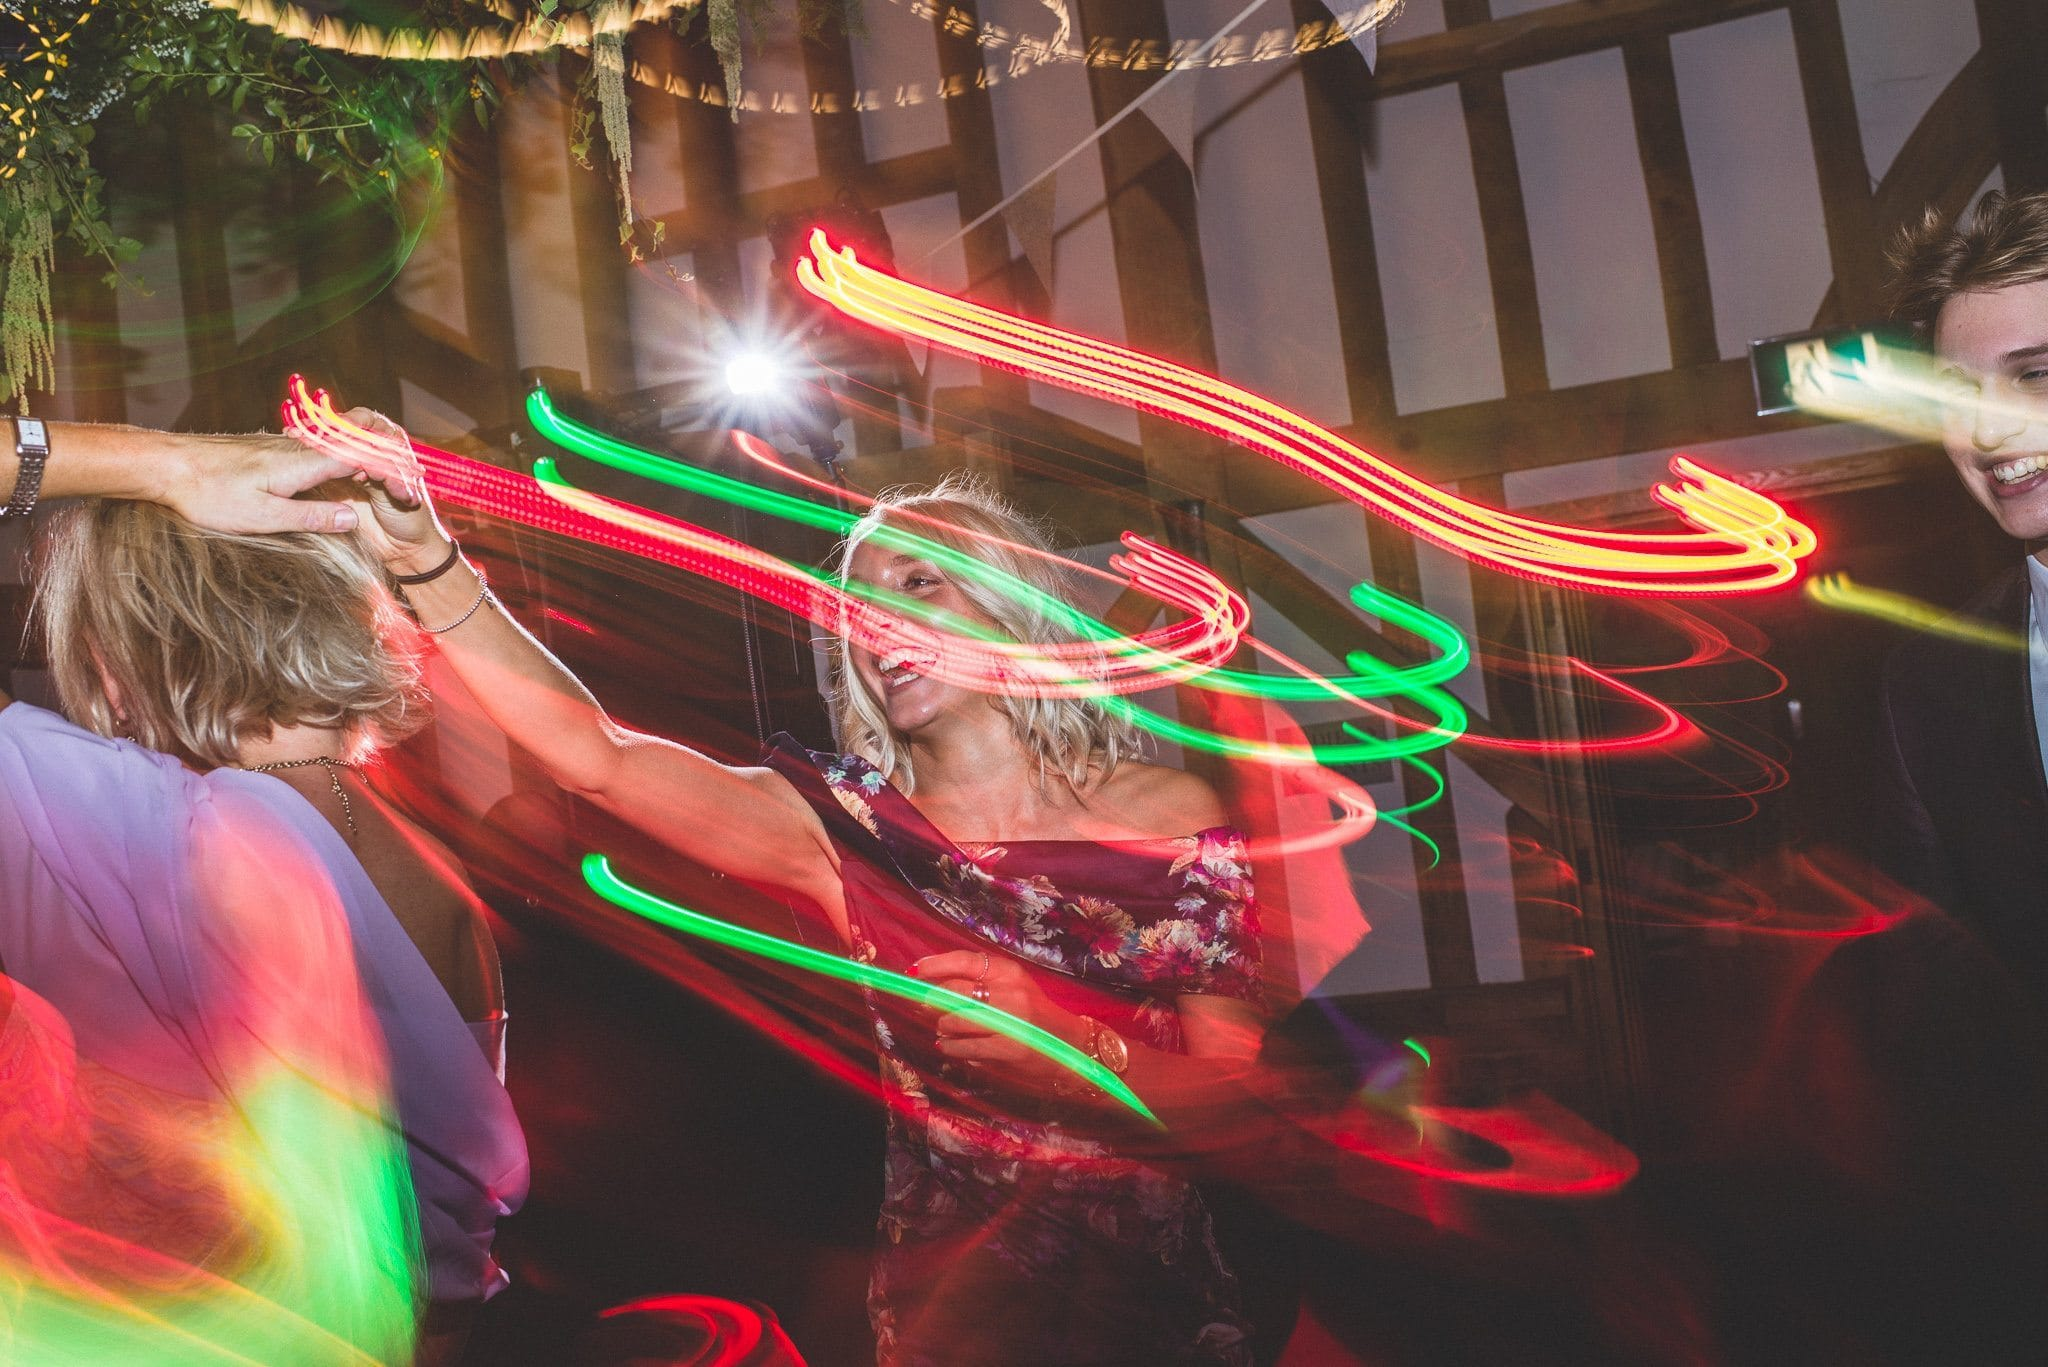 Green and orange light trails blur across the image as the dancefloor fills up. It looks like a great party!